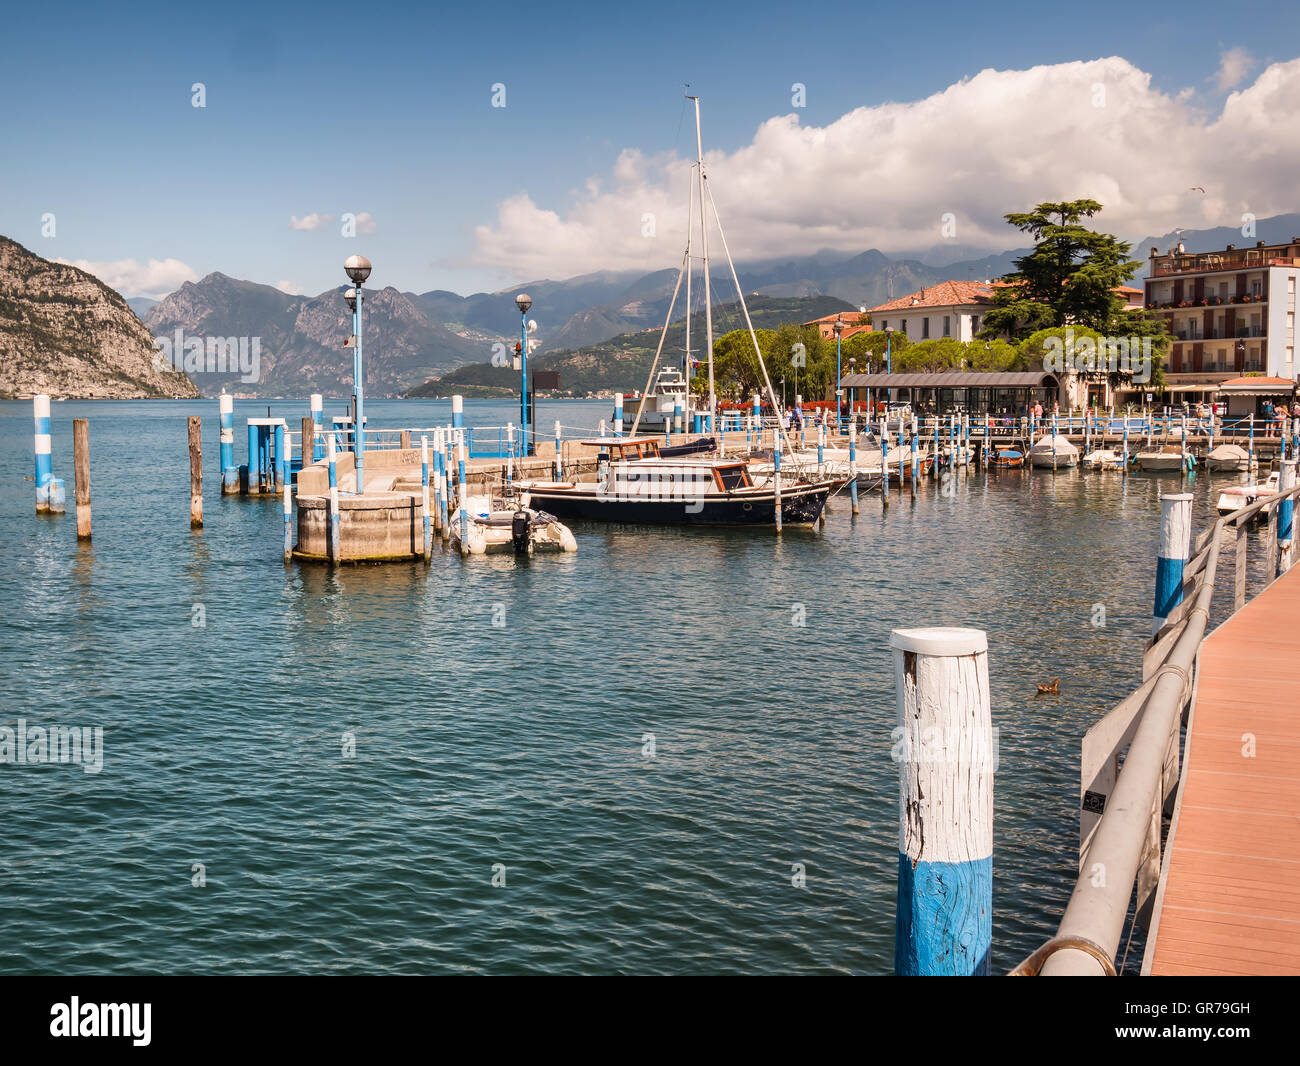 Marina in Iseo Village at lake Iseo in Italy - Stock Image